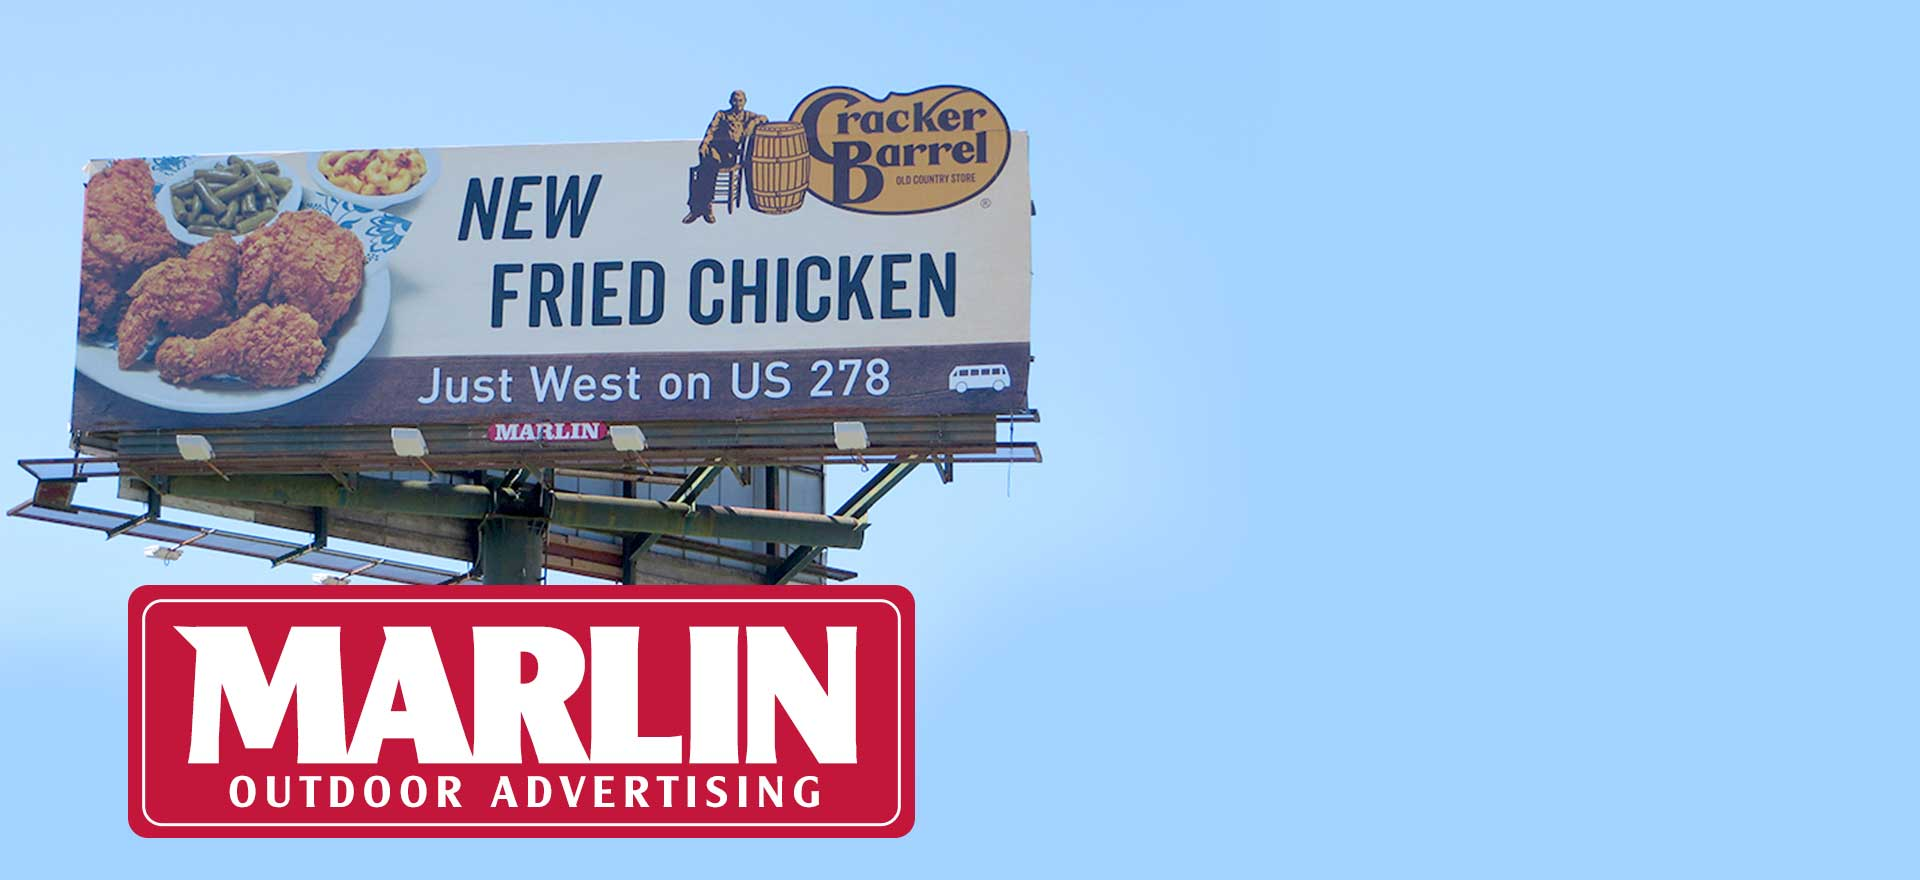 Marlin Outdoor Advertising